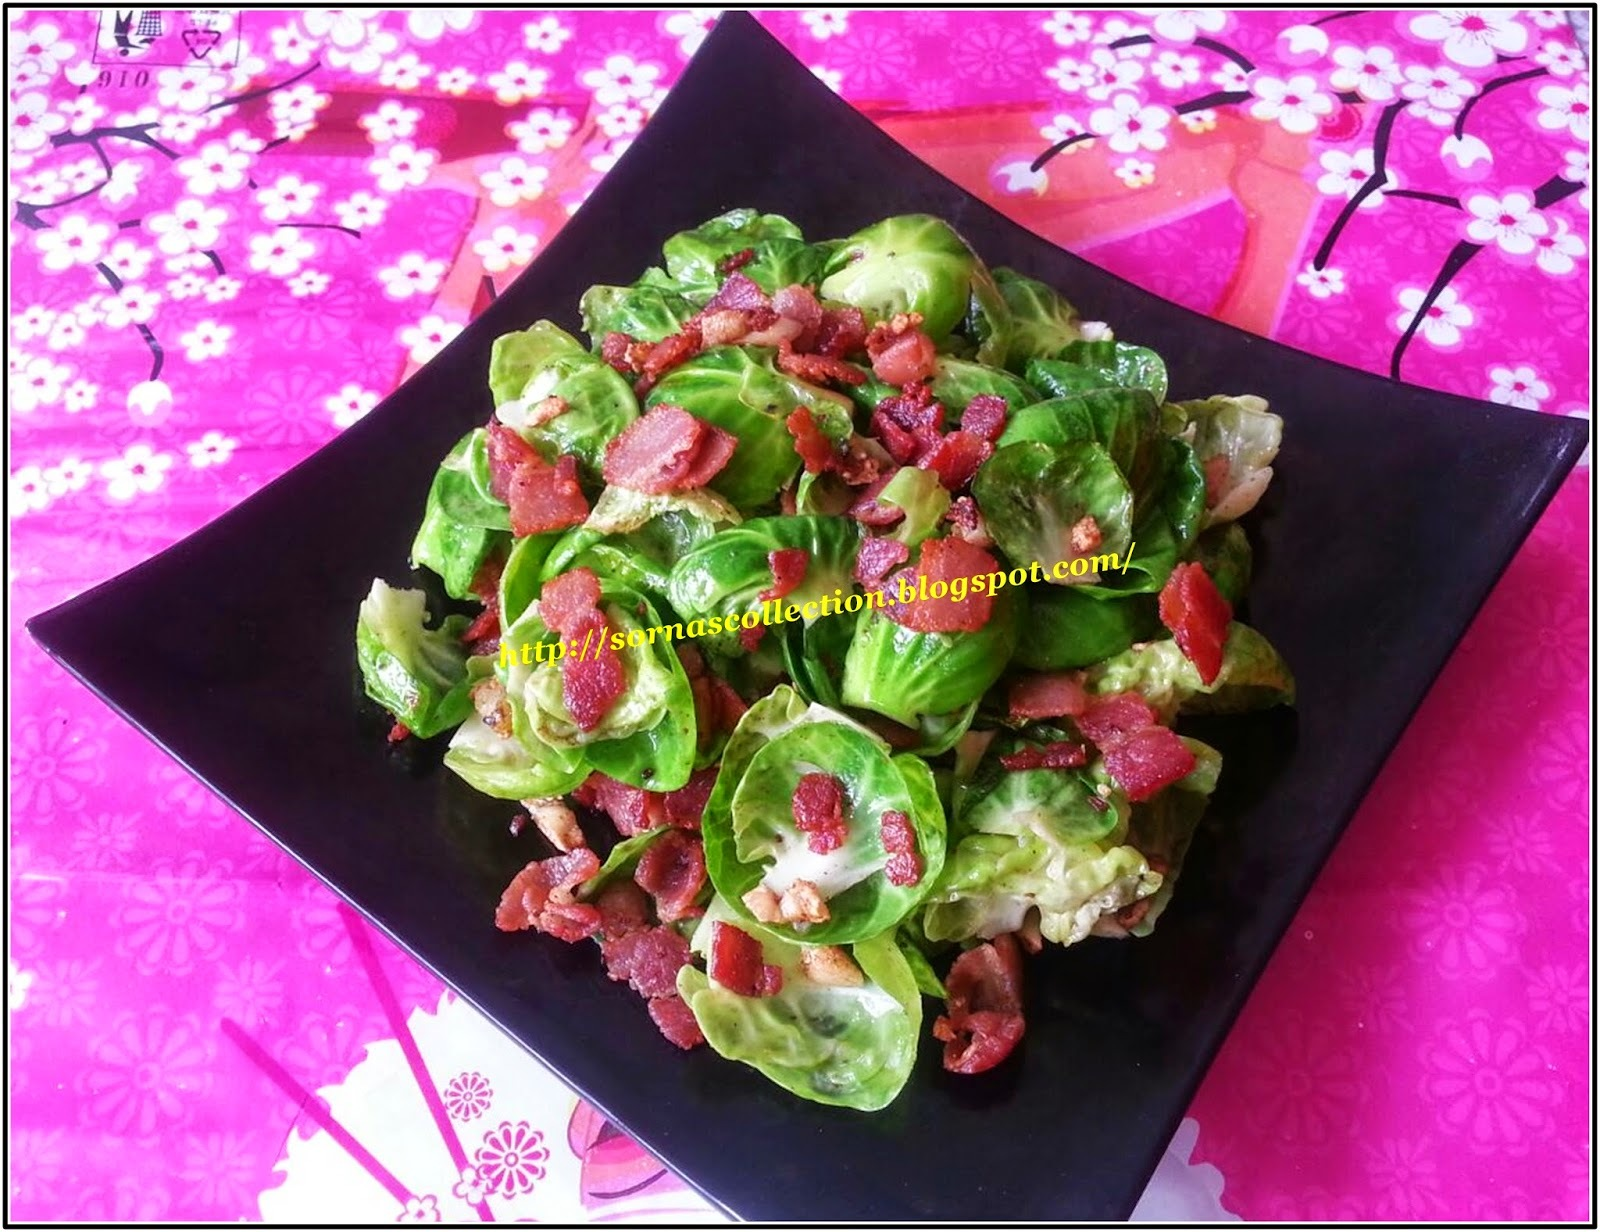 STIR-FRIED BRUSSELS WITH VEGETARIAN BACON